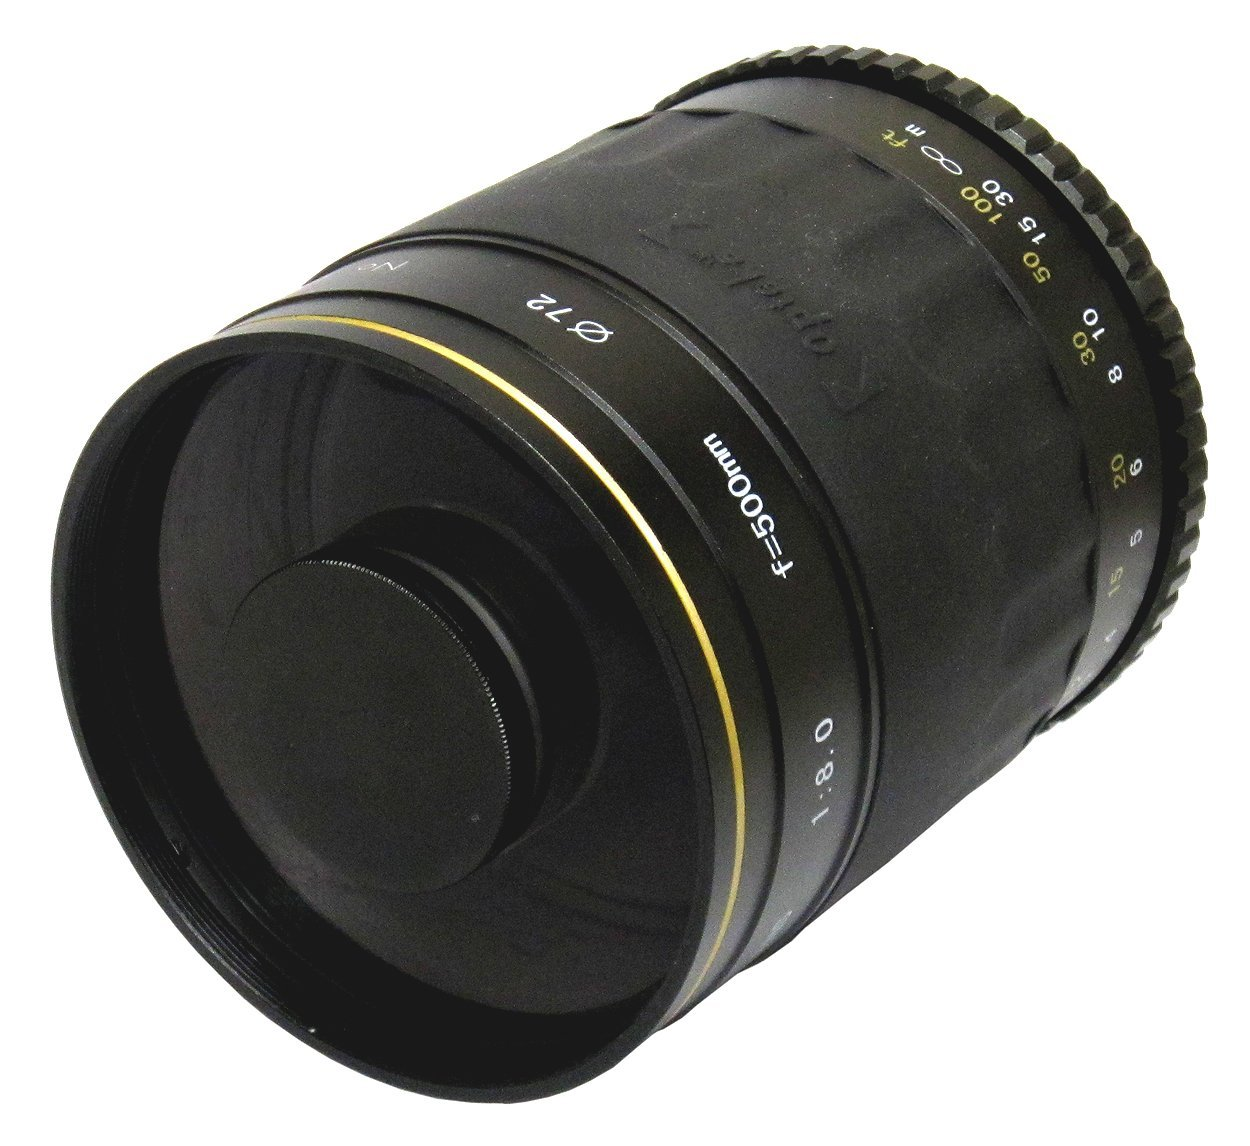 Opteka 500mm f/8 High Definition Telephoto Mirror Lens for Nikon D4S, DF, D4, D3X, D810, D800, D750, D610, D600, D7100, D7000, D5500, D5300, D5200, D5100, D3300, D3200 and D3100 Digital SLR Cameras